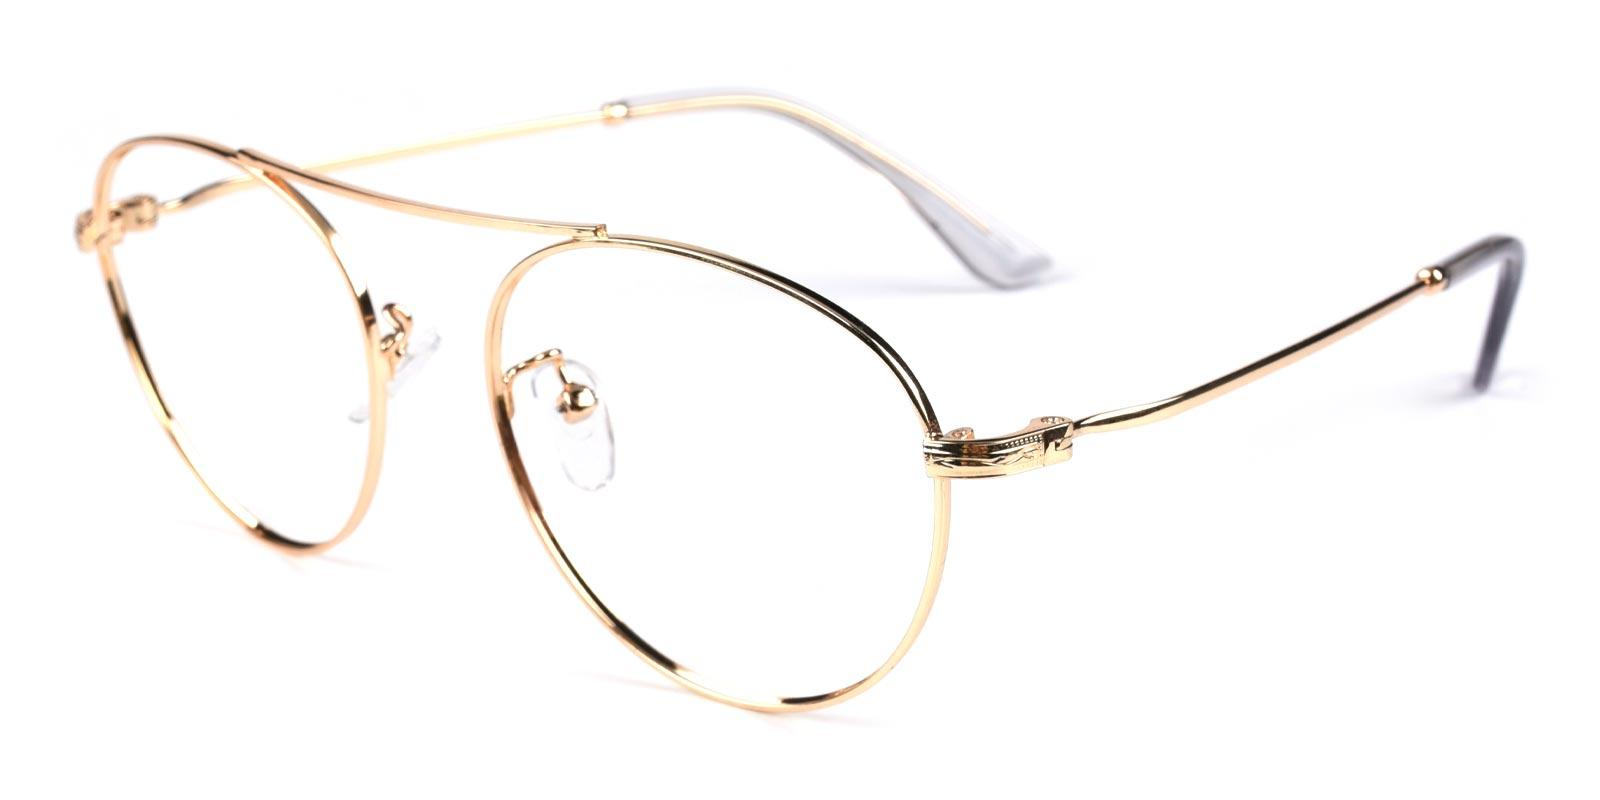 Fleybean-Gold-Aviator-Metal-Eyeglasses-additional1